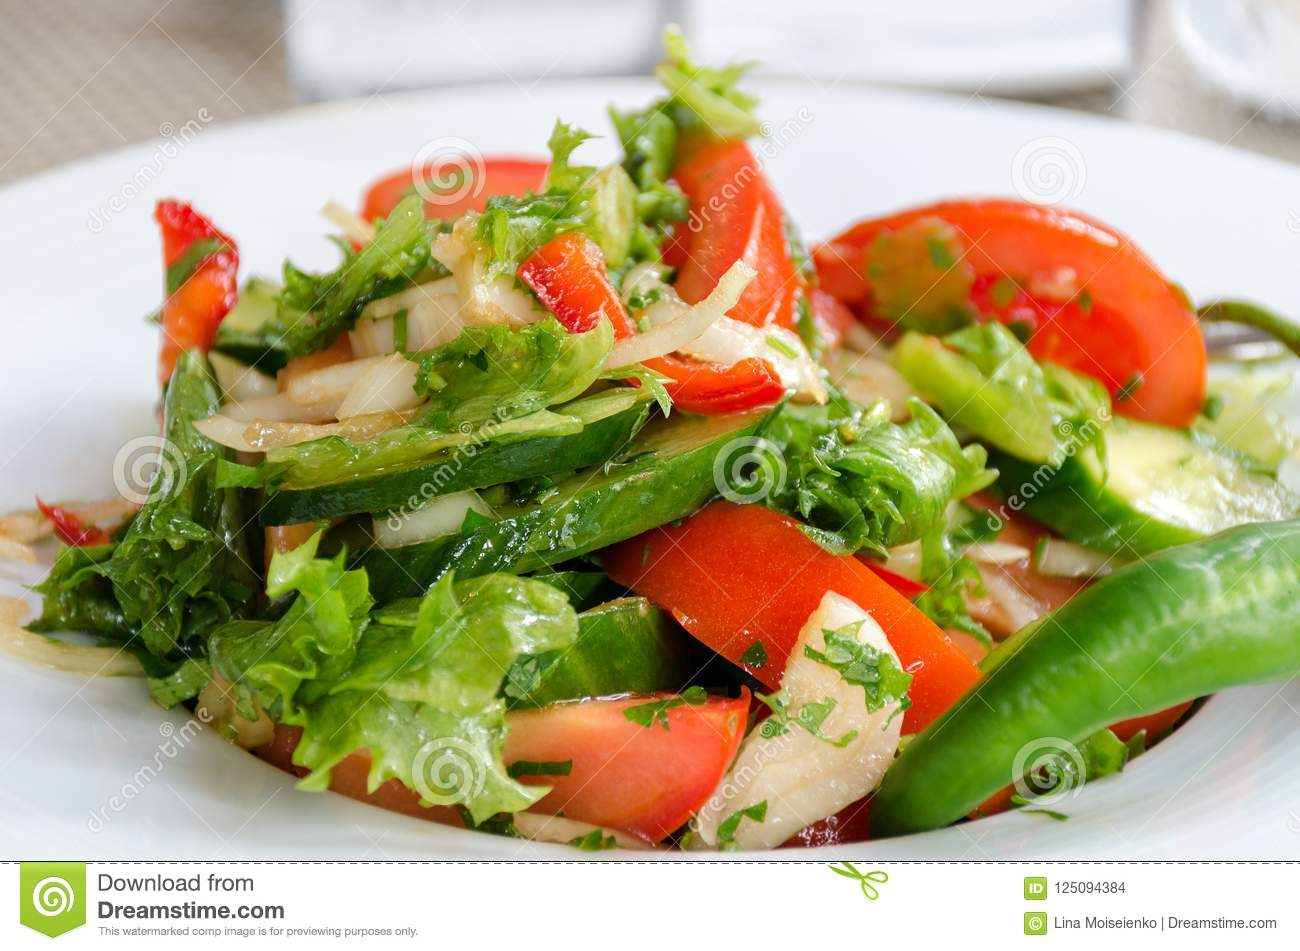 Healthy natural food, fresh salad with vegetables in plate